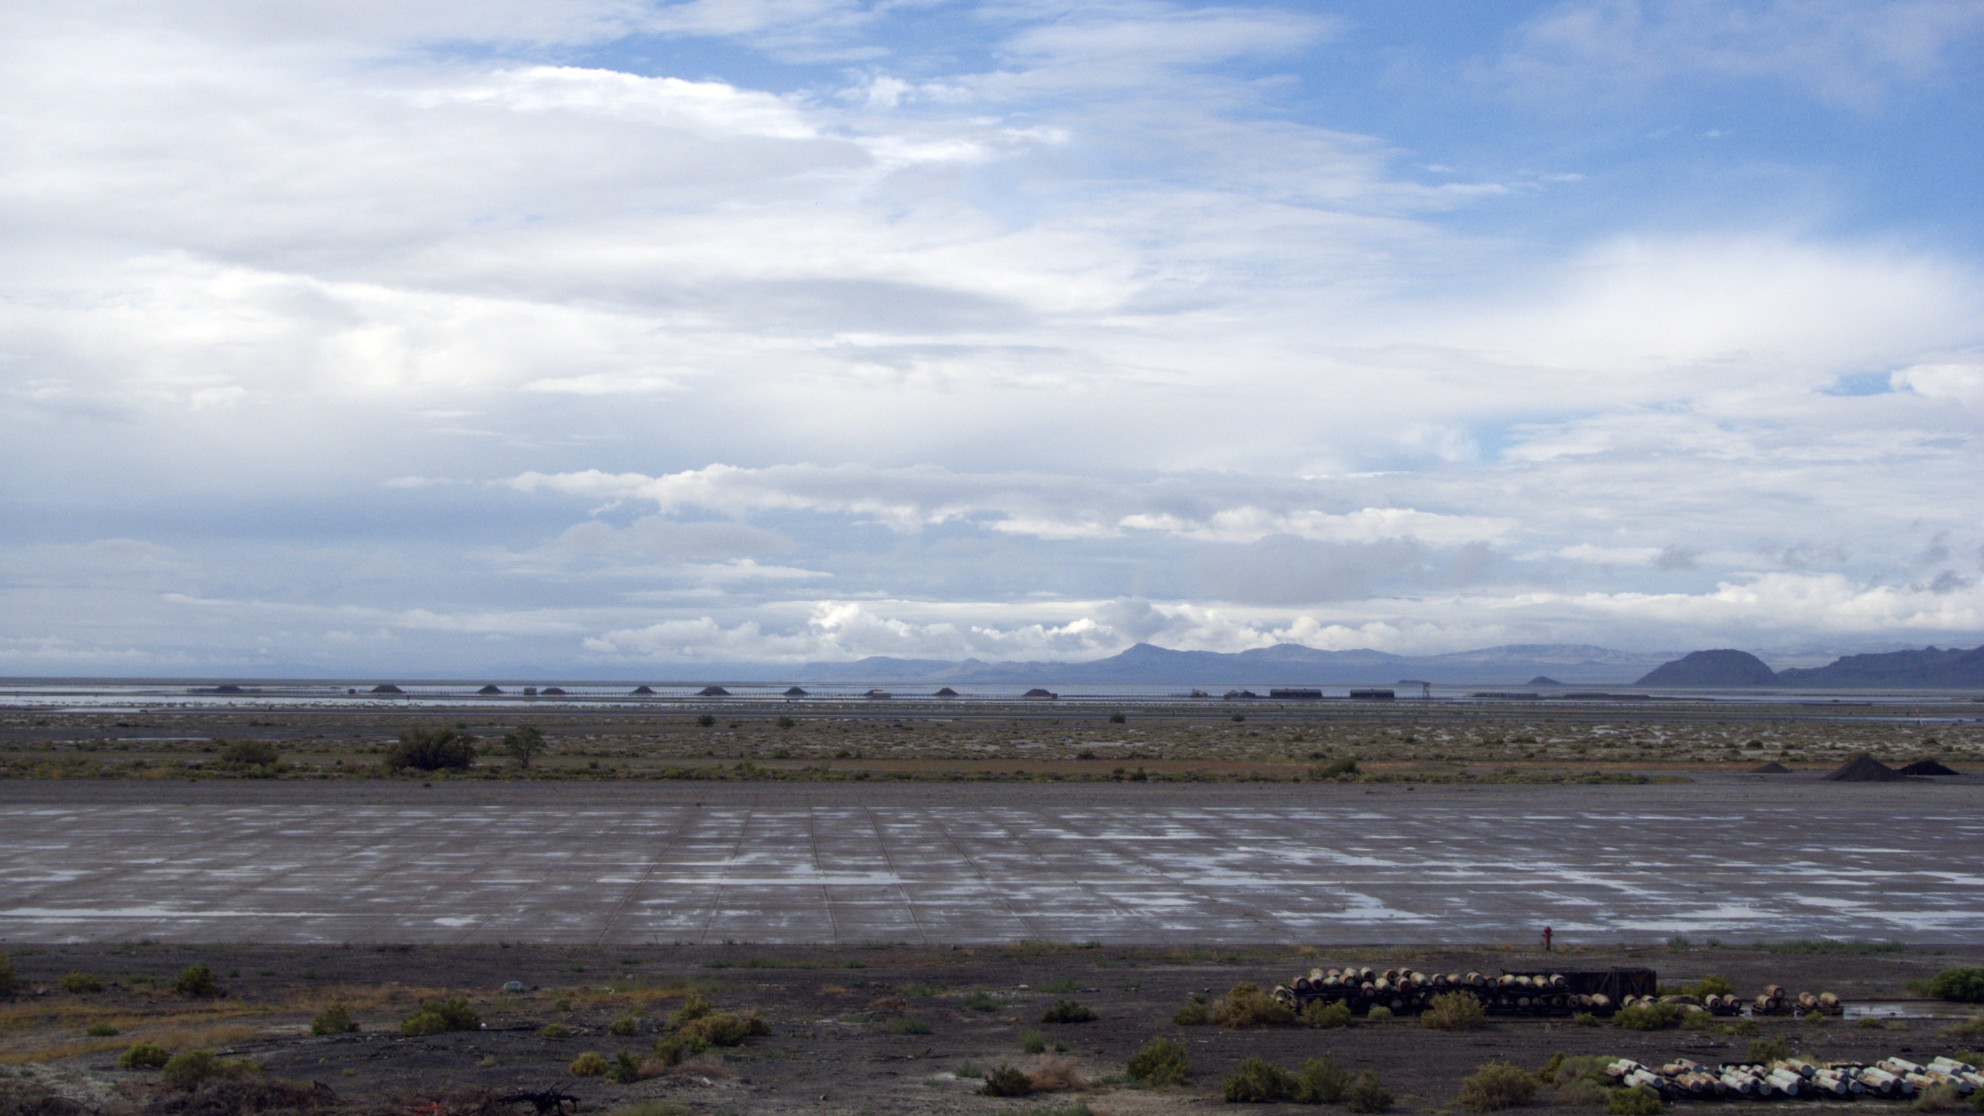 Wendover Air Field